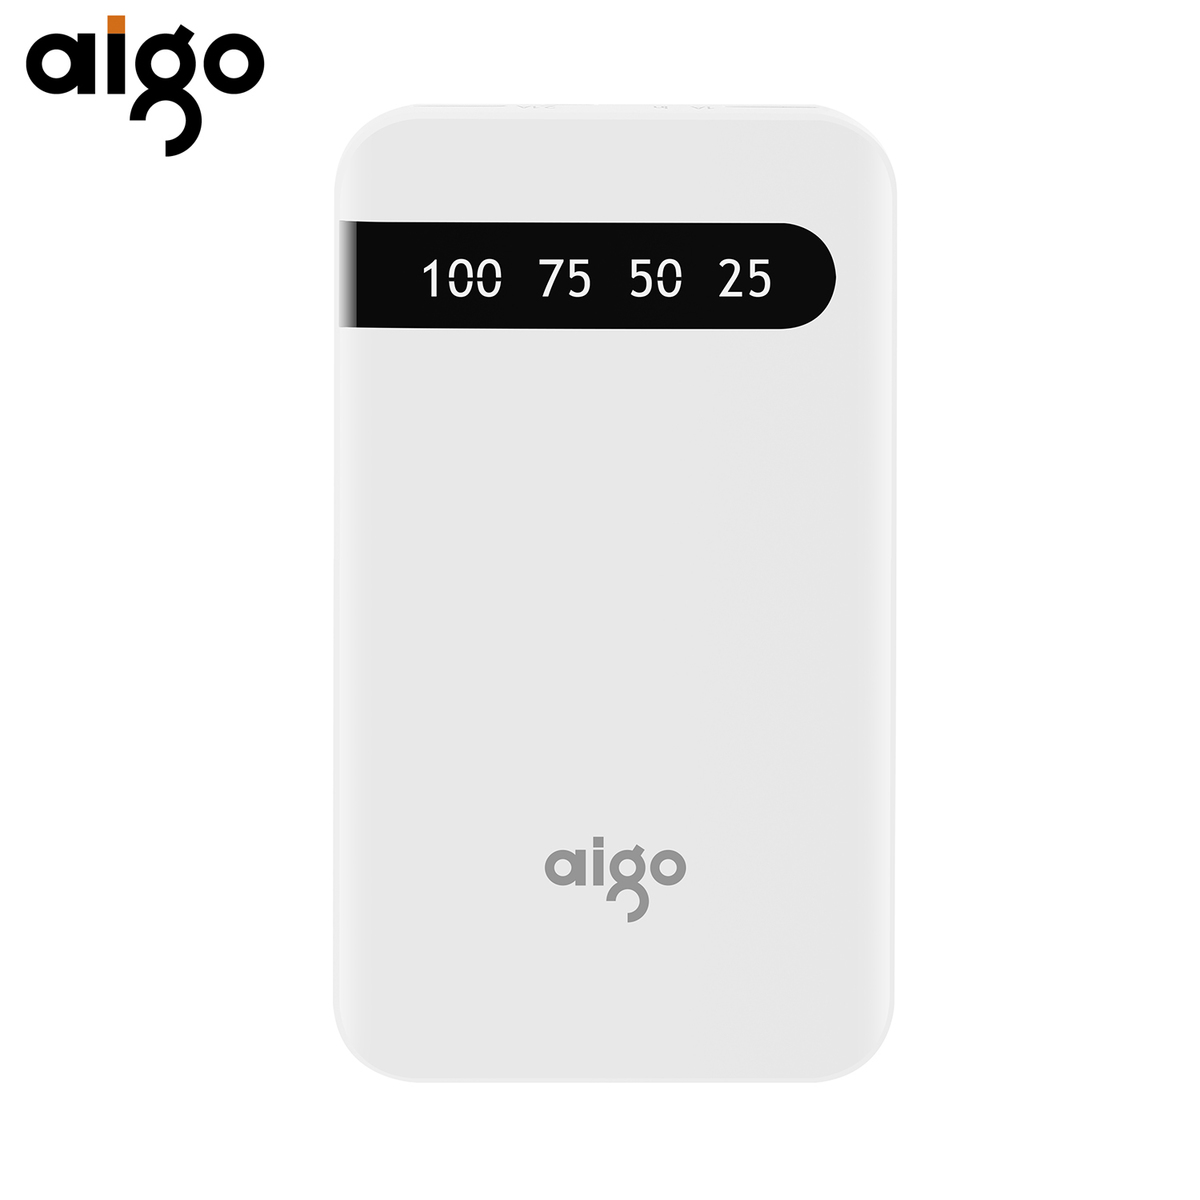 Aigo D20000 Pover Bank 20000mAh Large Capacity Power Bank Dual USB Input Port Charger External Battery Pack For Mobile Phone